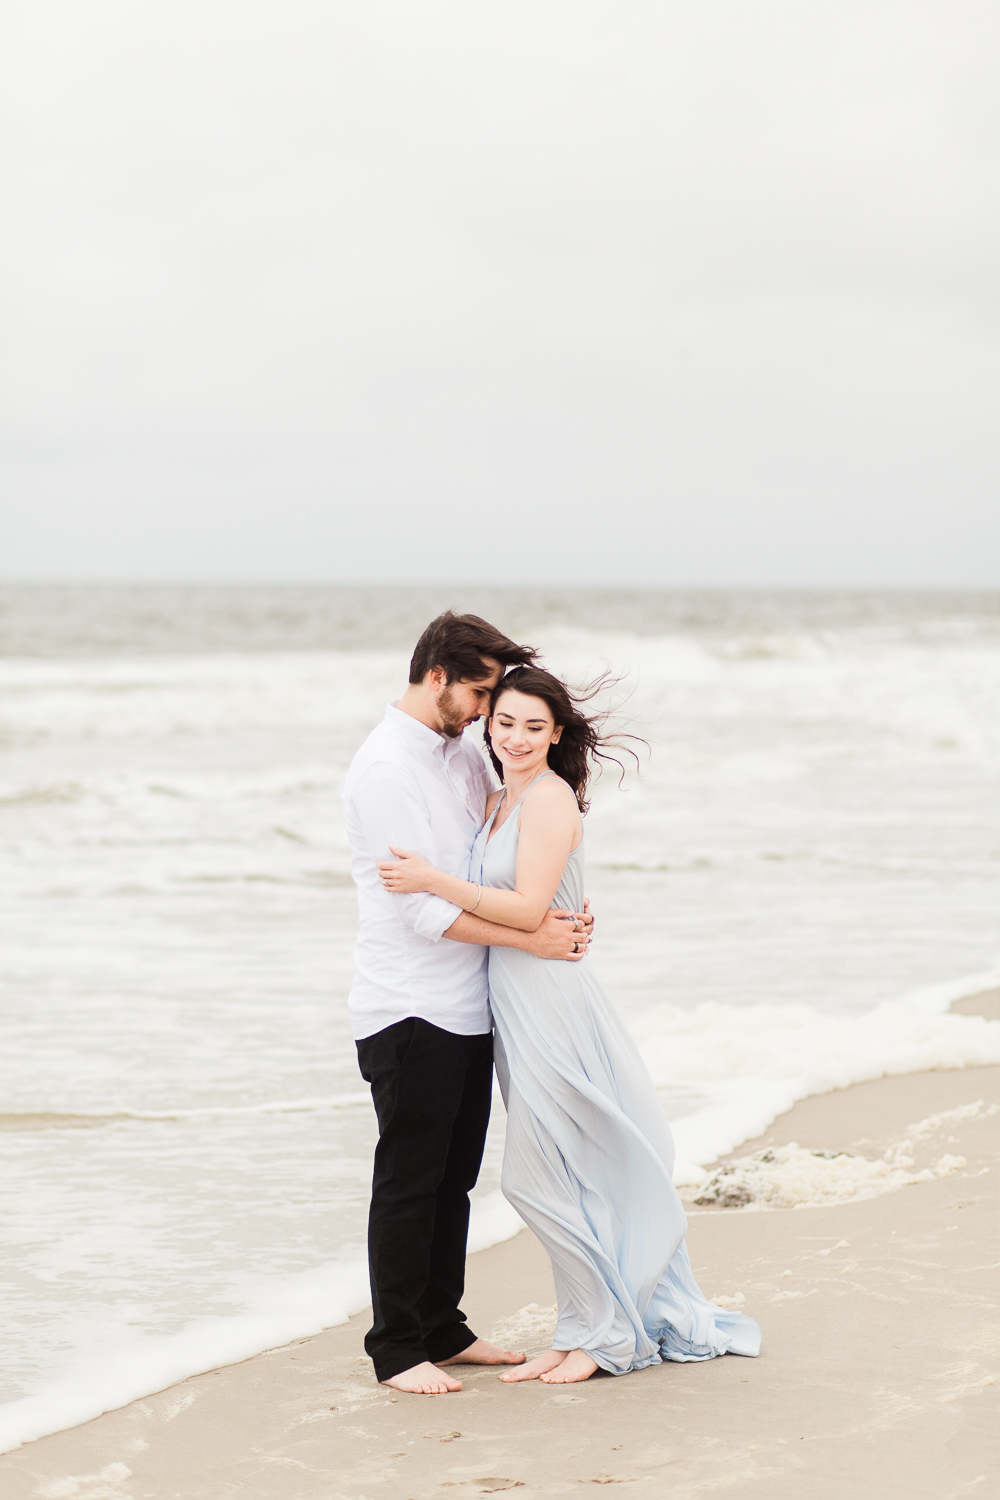 wilmingtonweddingphotographer-30.jpg